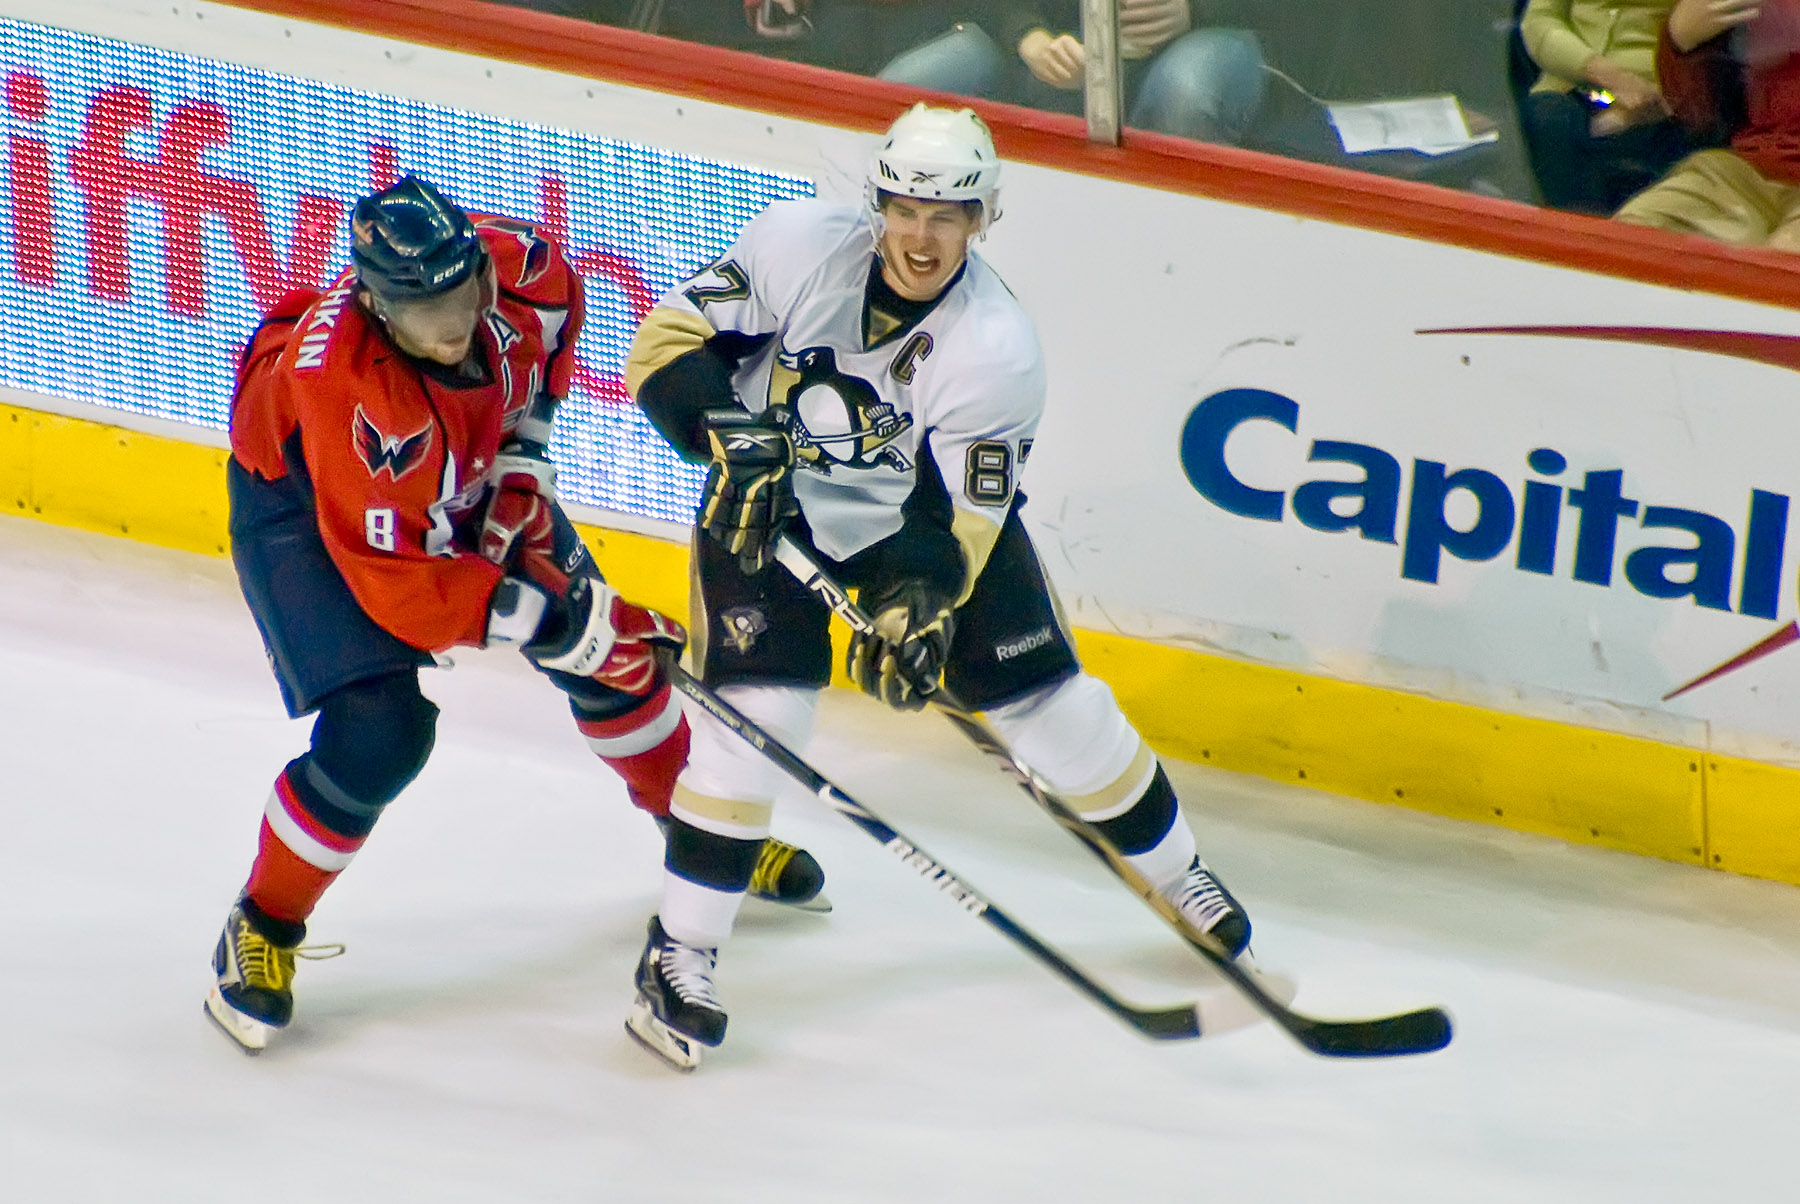 Alexander Ovechkin and Sidney Crosby remain huge rivals. (Flickr)